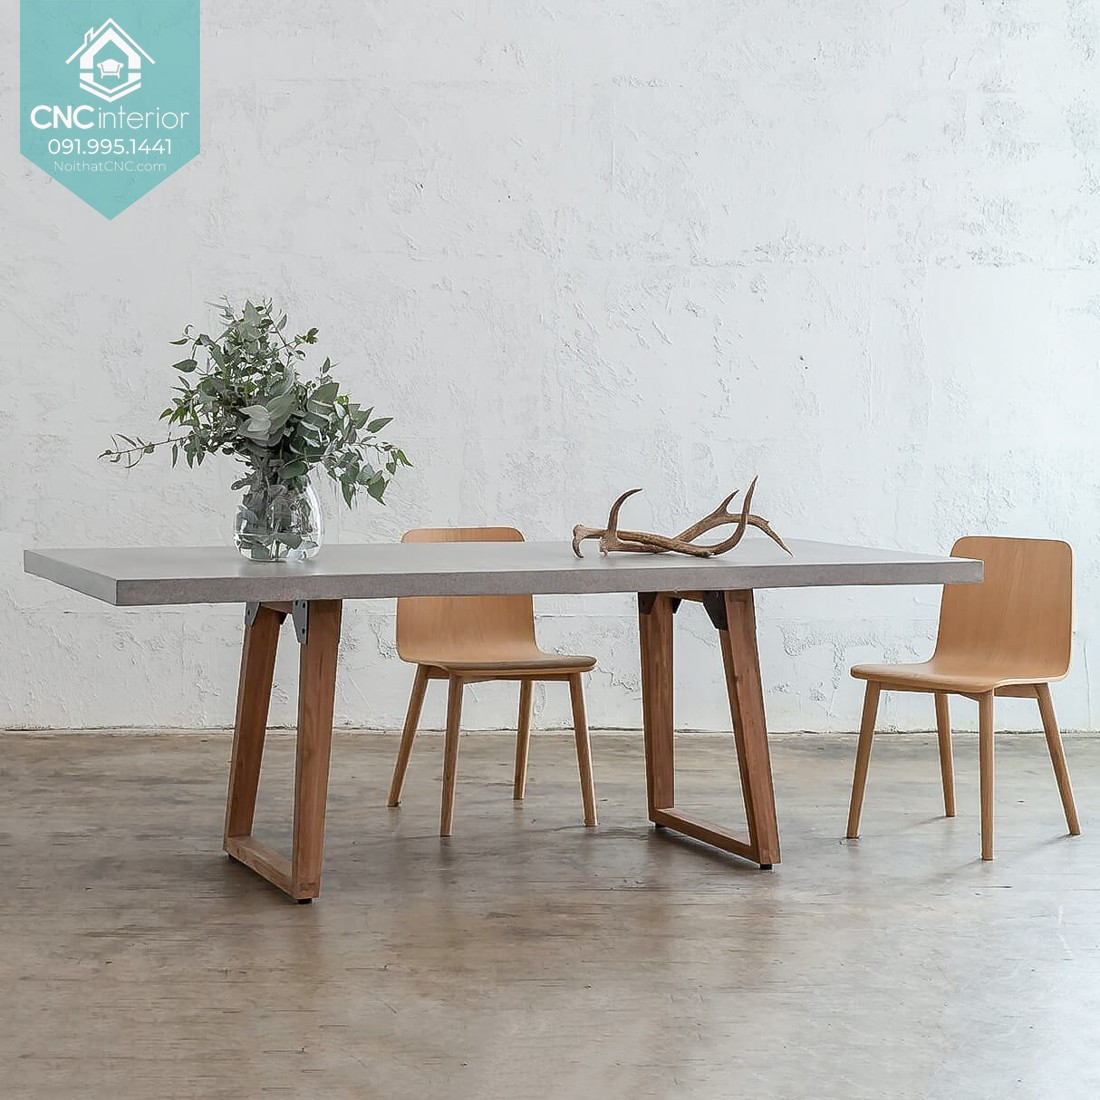 WHY SHOULD WE CHOOSE DINING TABLE MADE IN VIETNAM 7